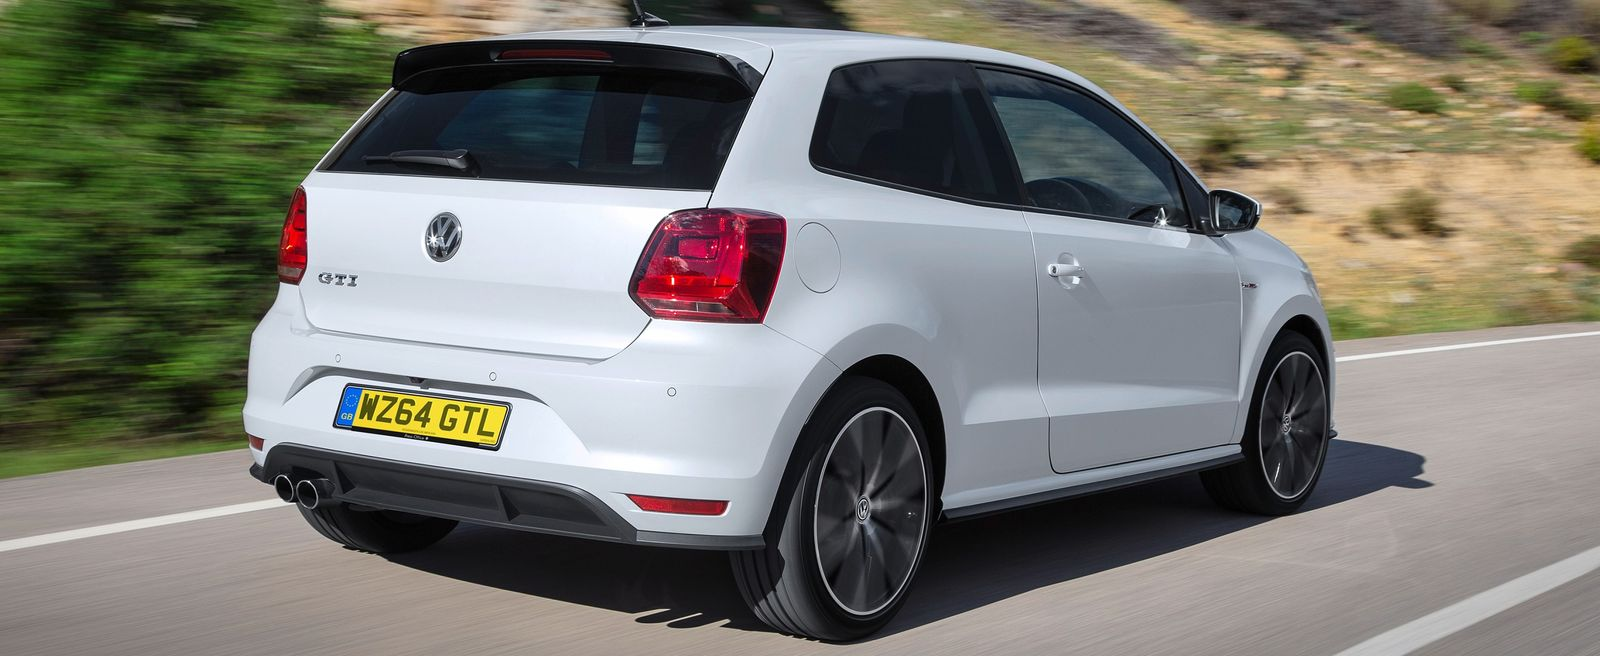 Volkswagen polo volkswagen car from united kingdom - The Hot Hatch Class Is Overflowing With Talent Currently From The Composed Yet Fun Peugeot 208 Gti To The Road Testers Favourites The Ford Fiesta St And